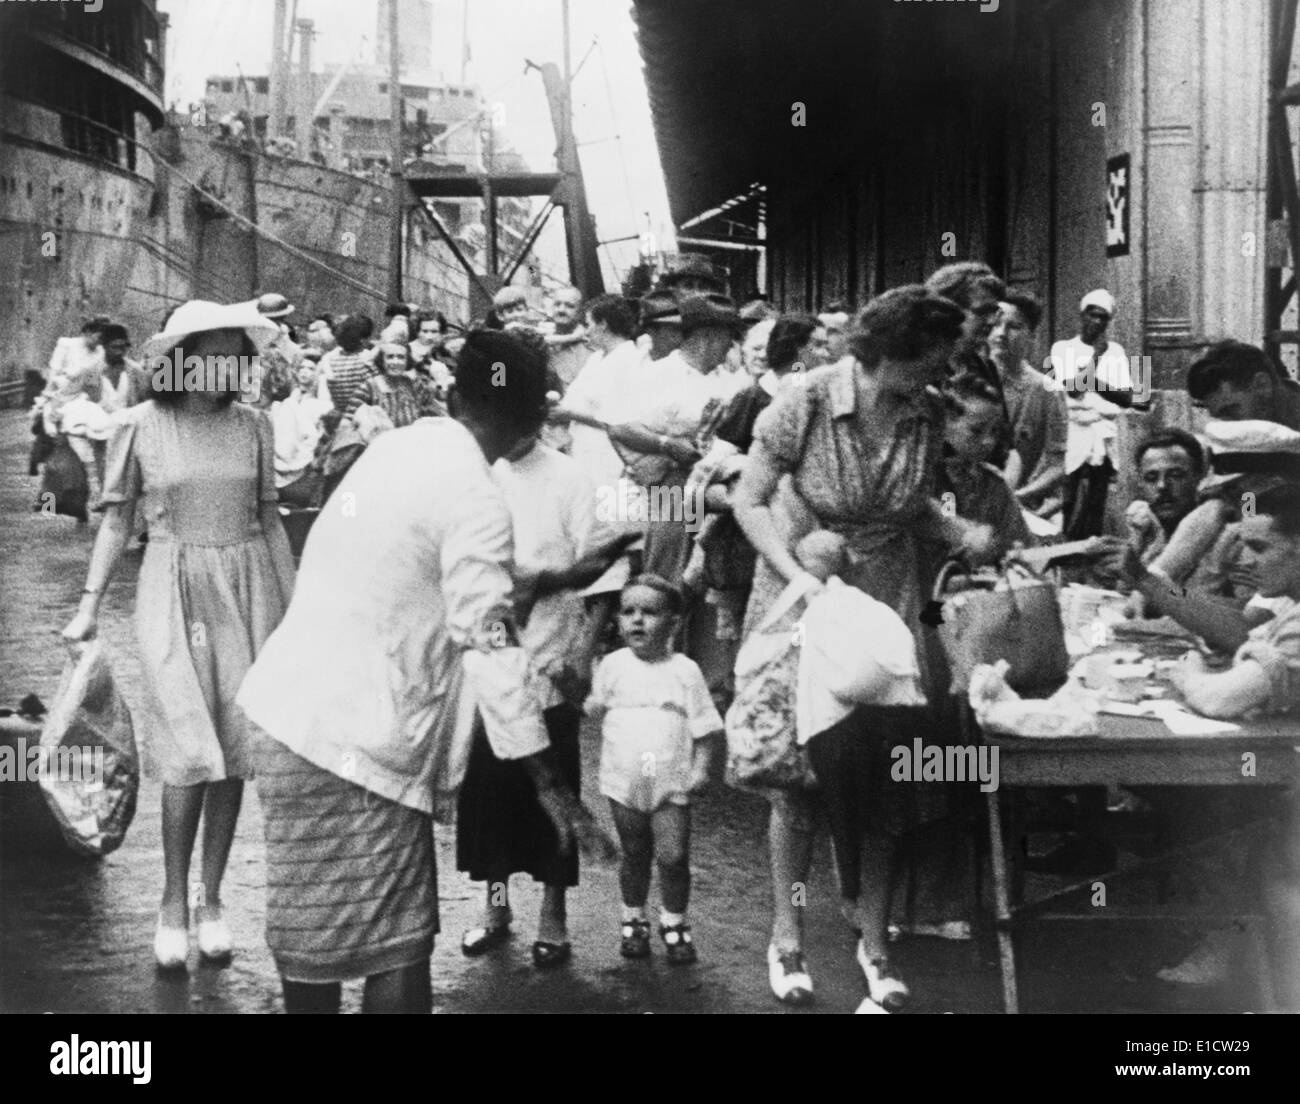 British colonial women and children evacuated from Singapore shortly before the Japanese invasion. World War 2, Jan.-Feb. 1942. - Stock Image